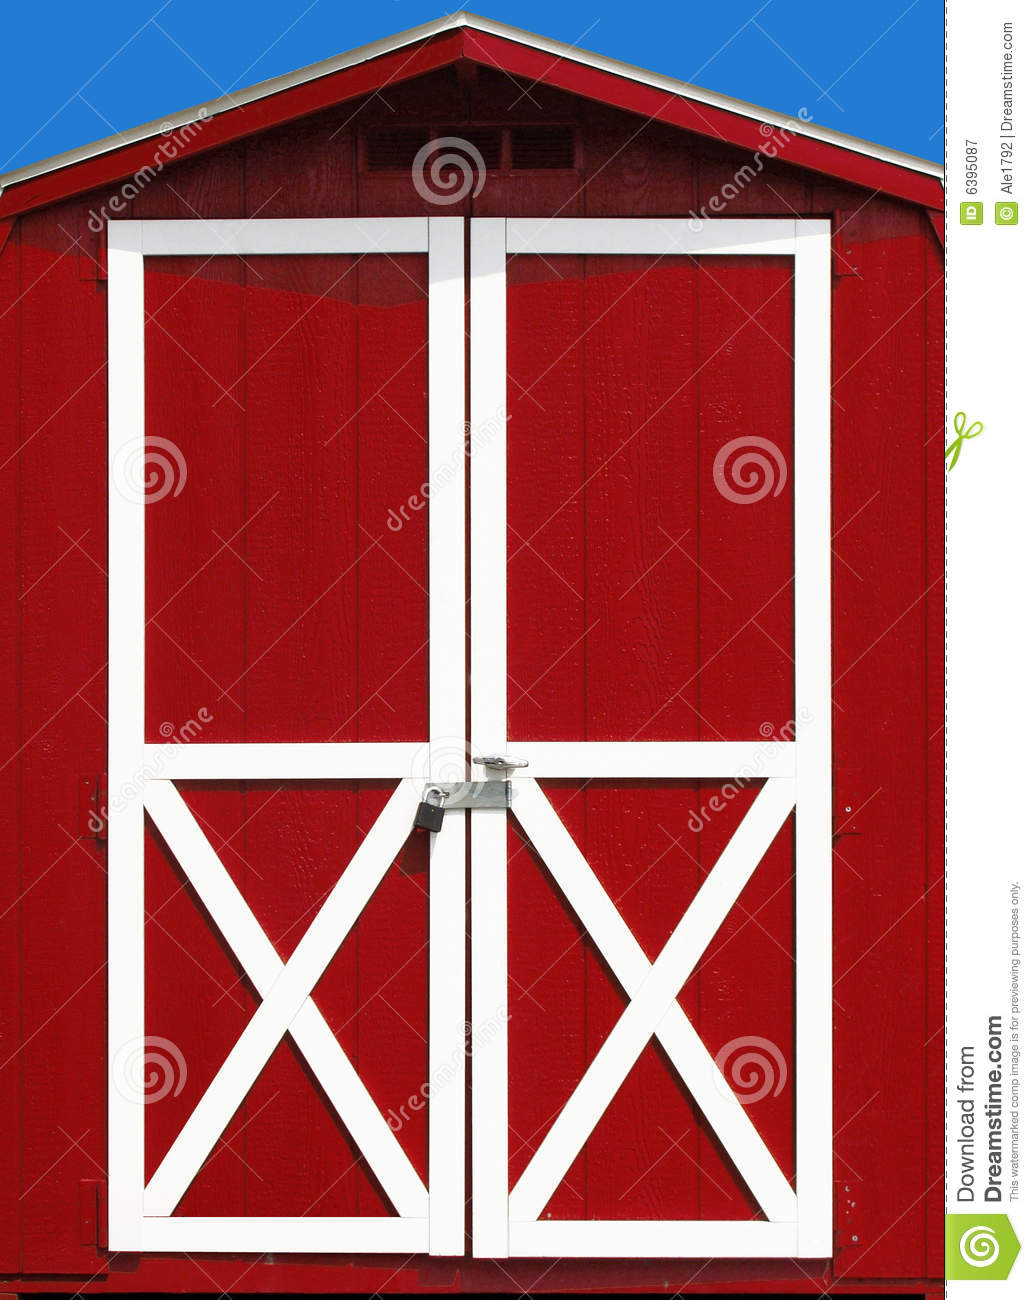 Barn clipart barn door Door Red Clipart Barn